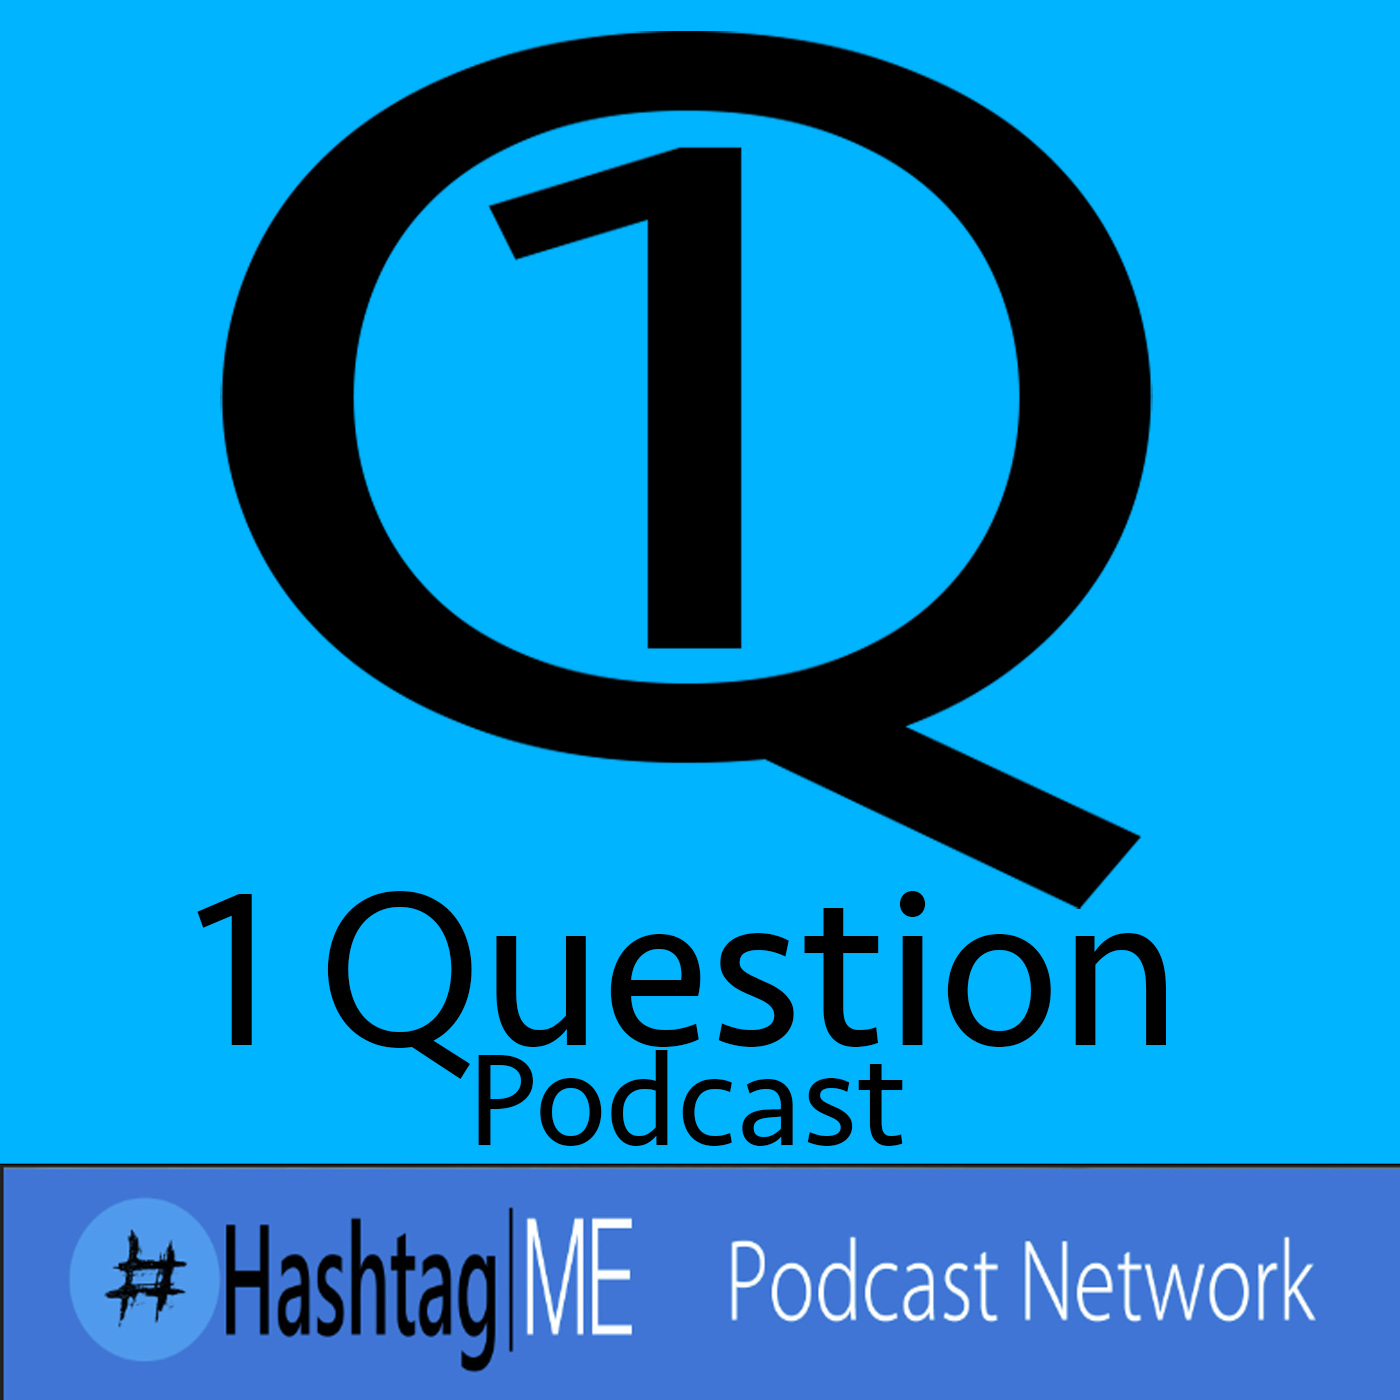 1 Question Podcast